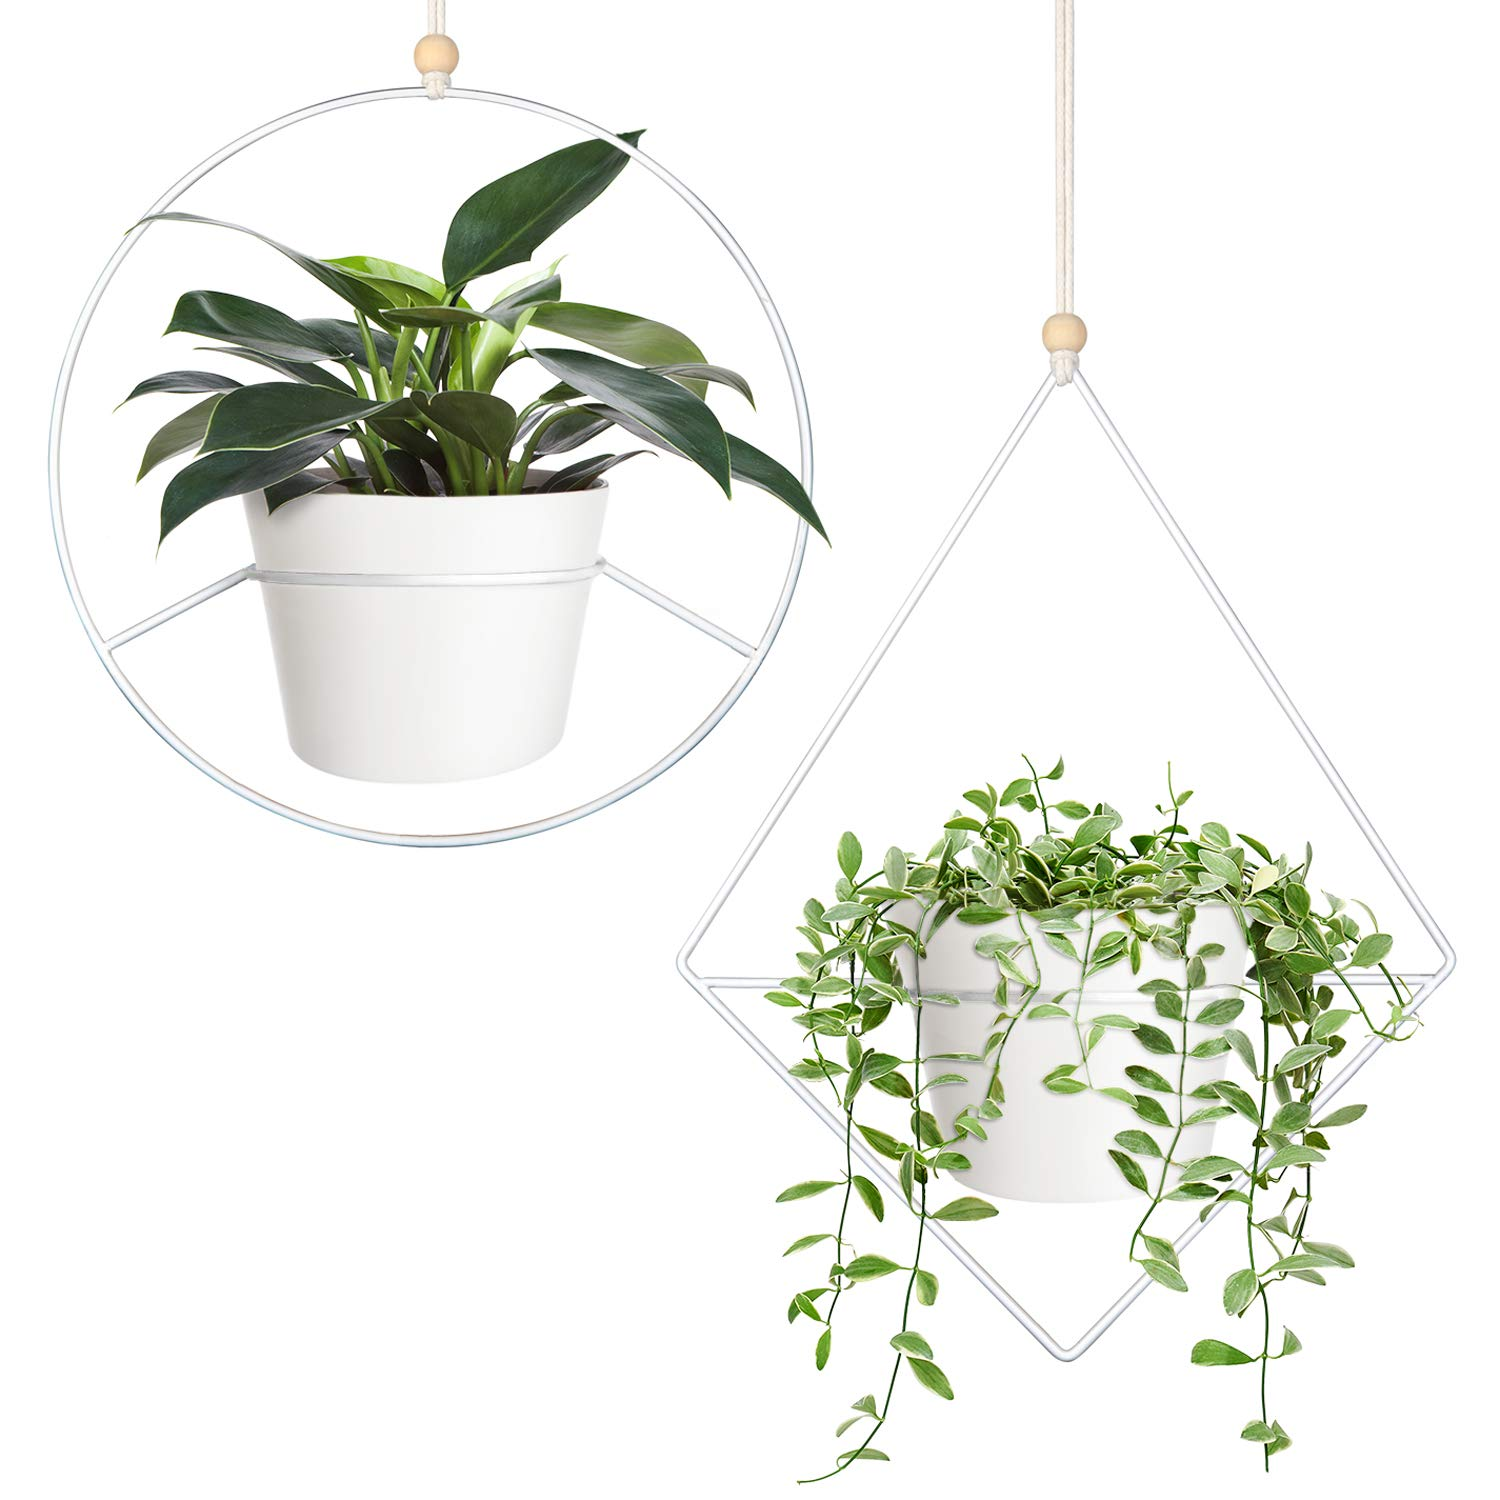 Mkono Boho Hanging Planter, Set of 2 Metal Plant Hanger in Diamond and Circle Shape with Plastic Plant Pot, Modern Mid Century Flower Pot Plant Holder, Fits 6 Inch Planter, White (Pots Included)